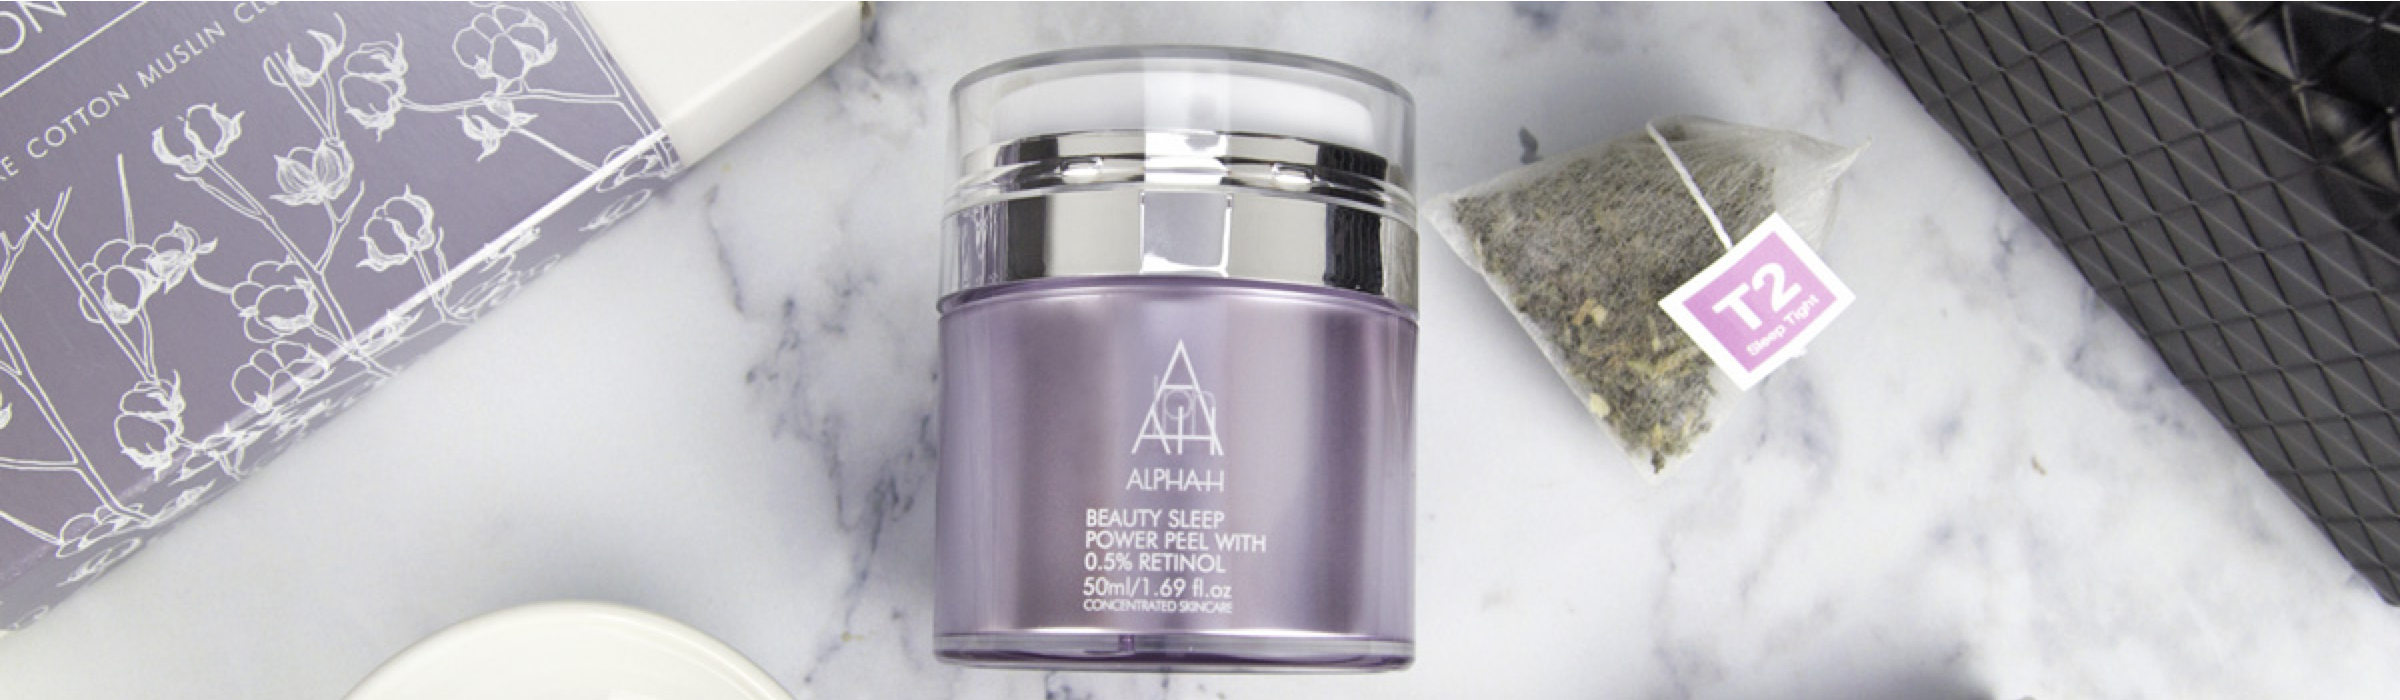 Alpha-H Beauty Sleep Power Peel Banner 2